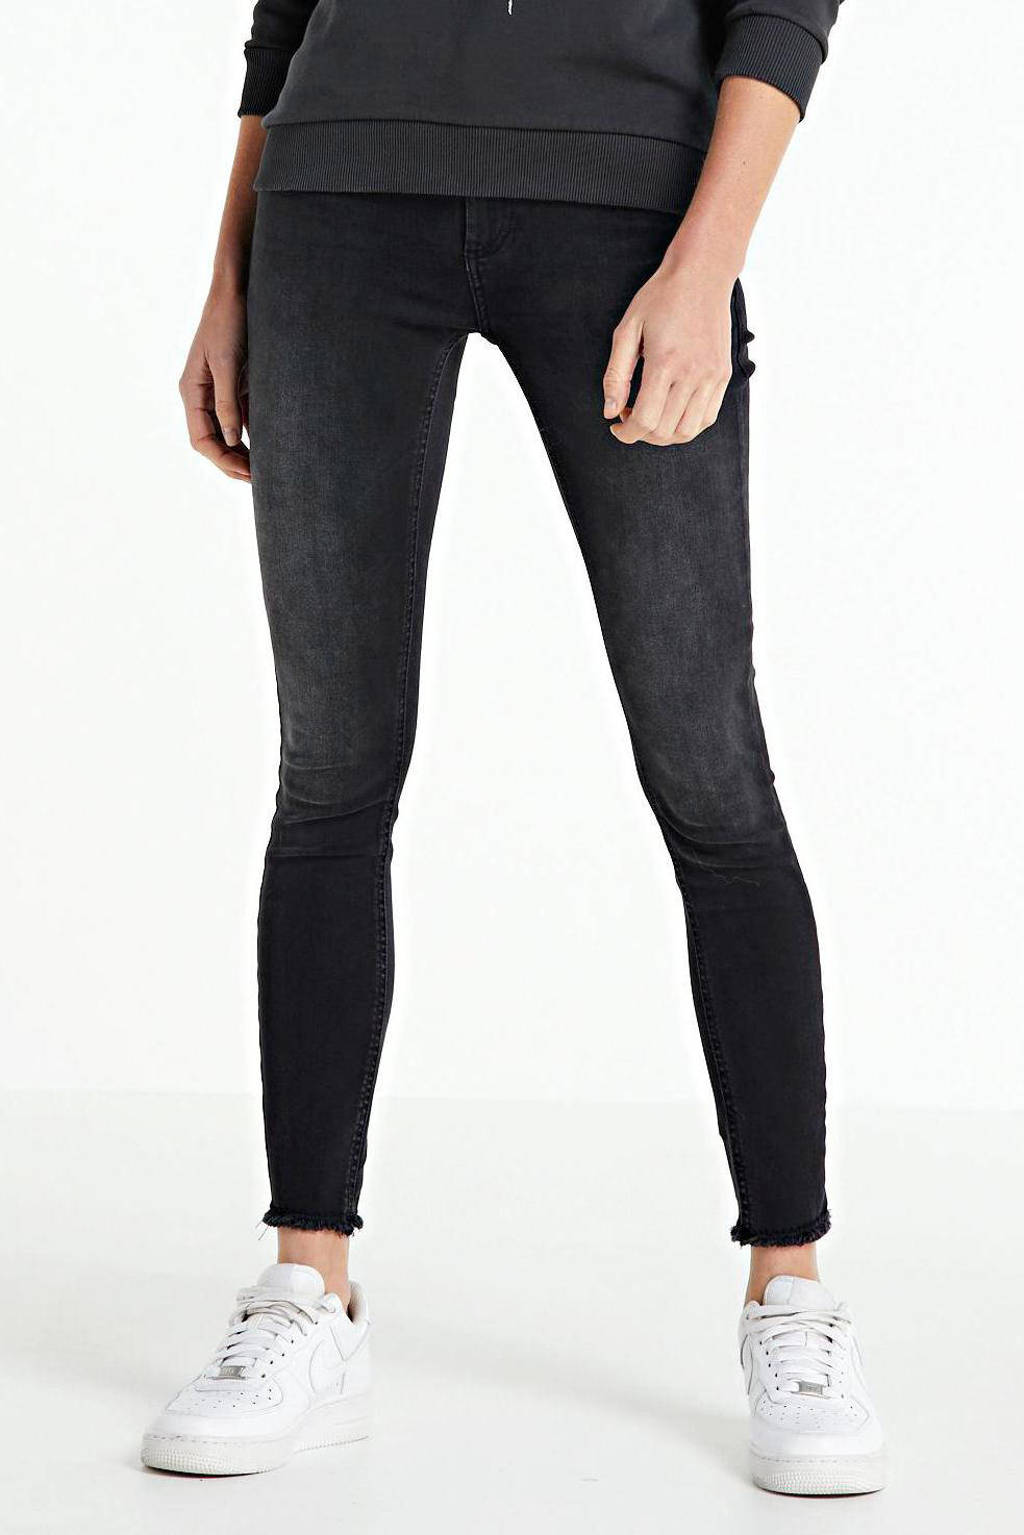 ONLY skinny jeans ONLBLUSH black denim, Zwart